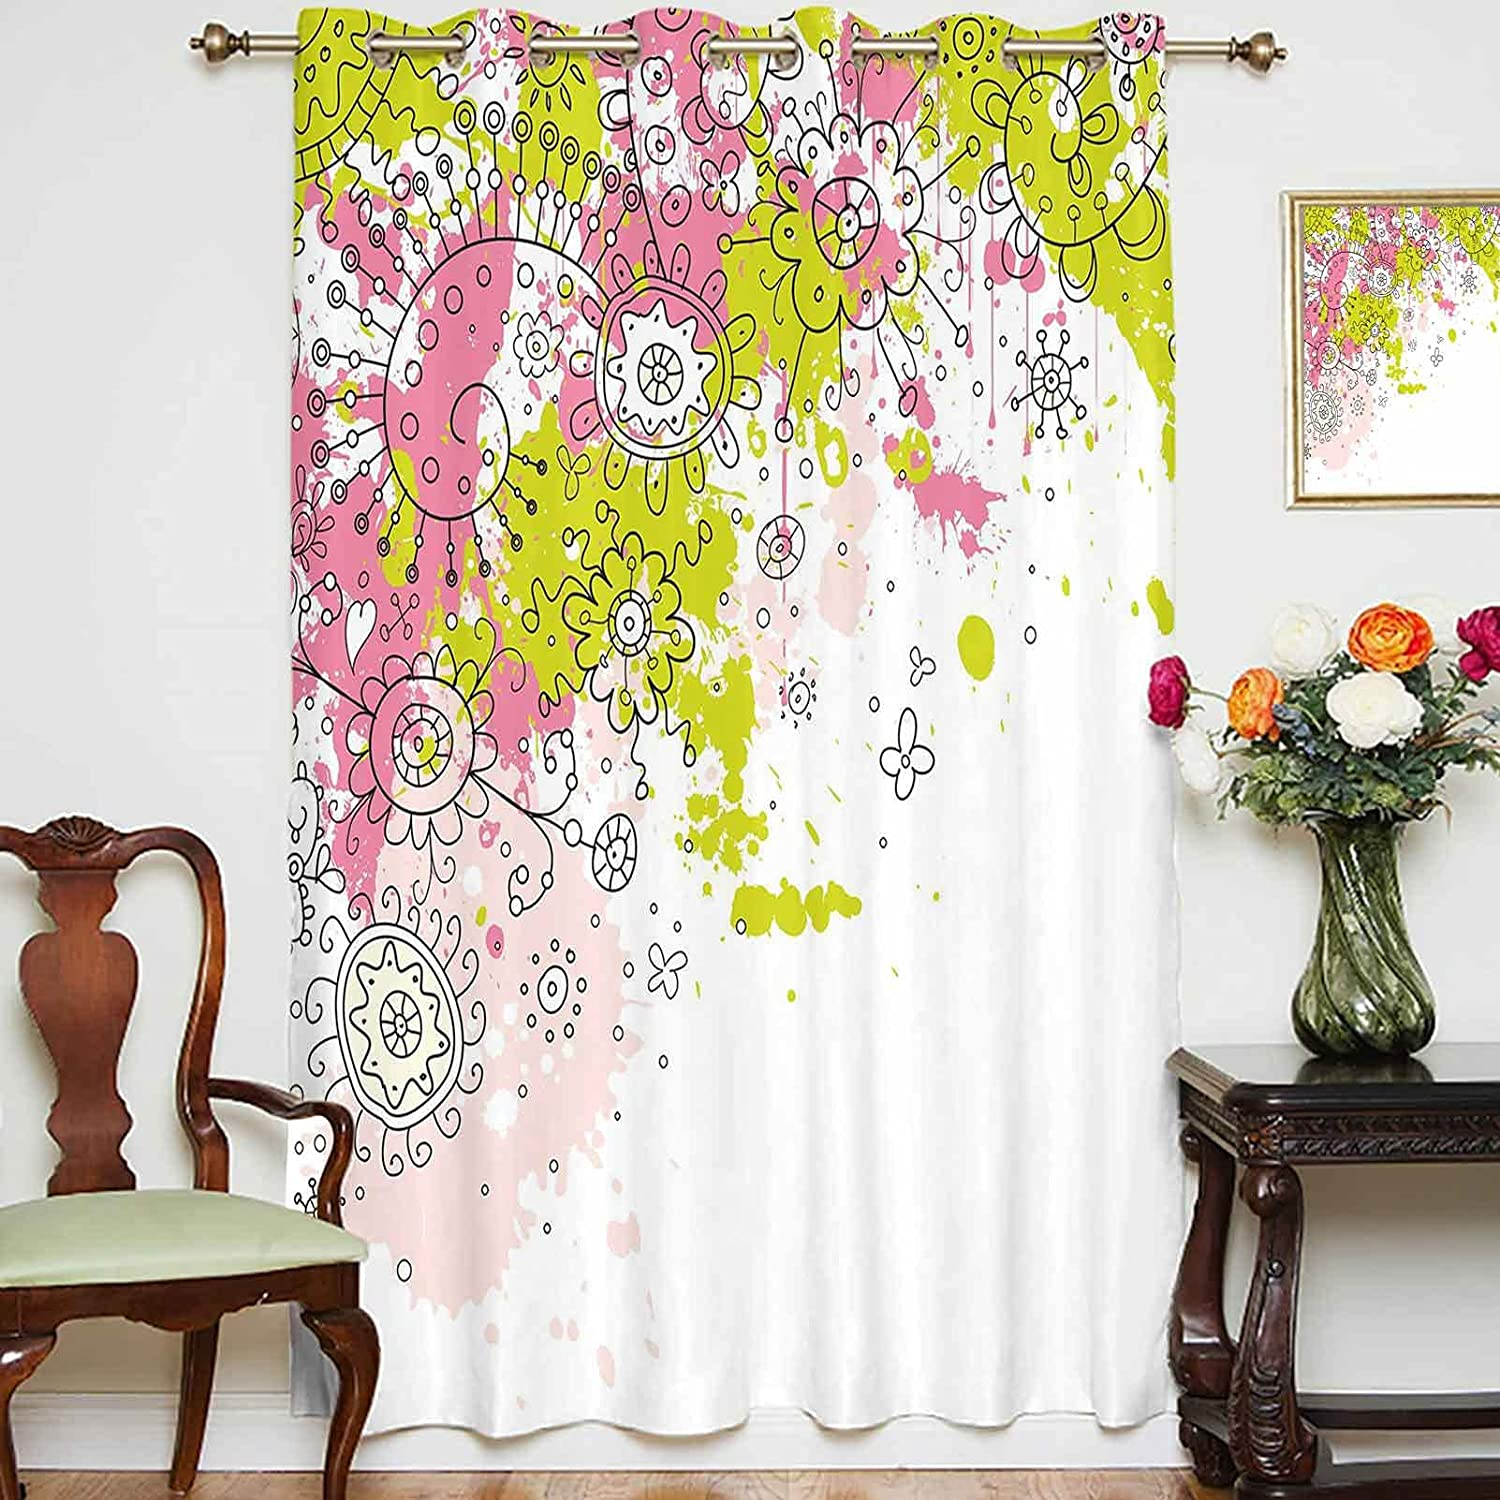 Blackout Shading Curtains Popular shop is the lowest price challenge White Sketchy Image Abstract Outstanding Backdrop